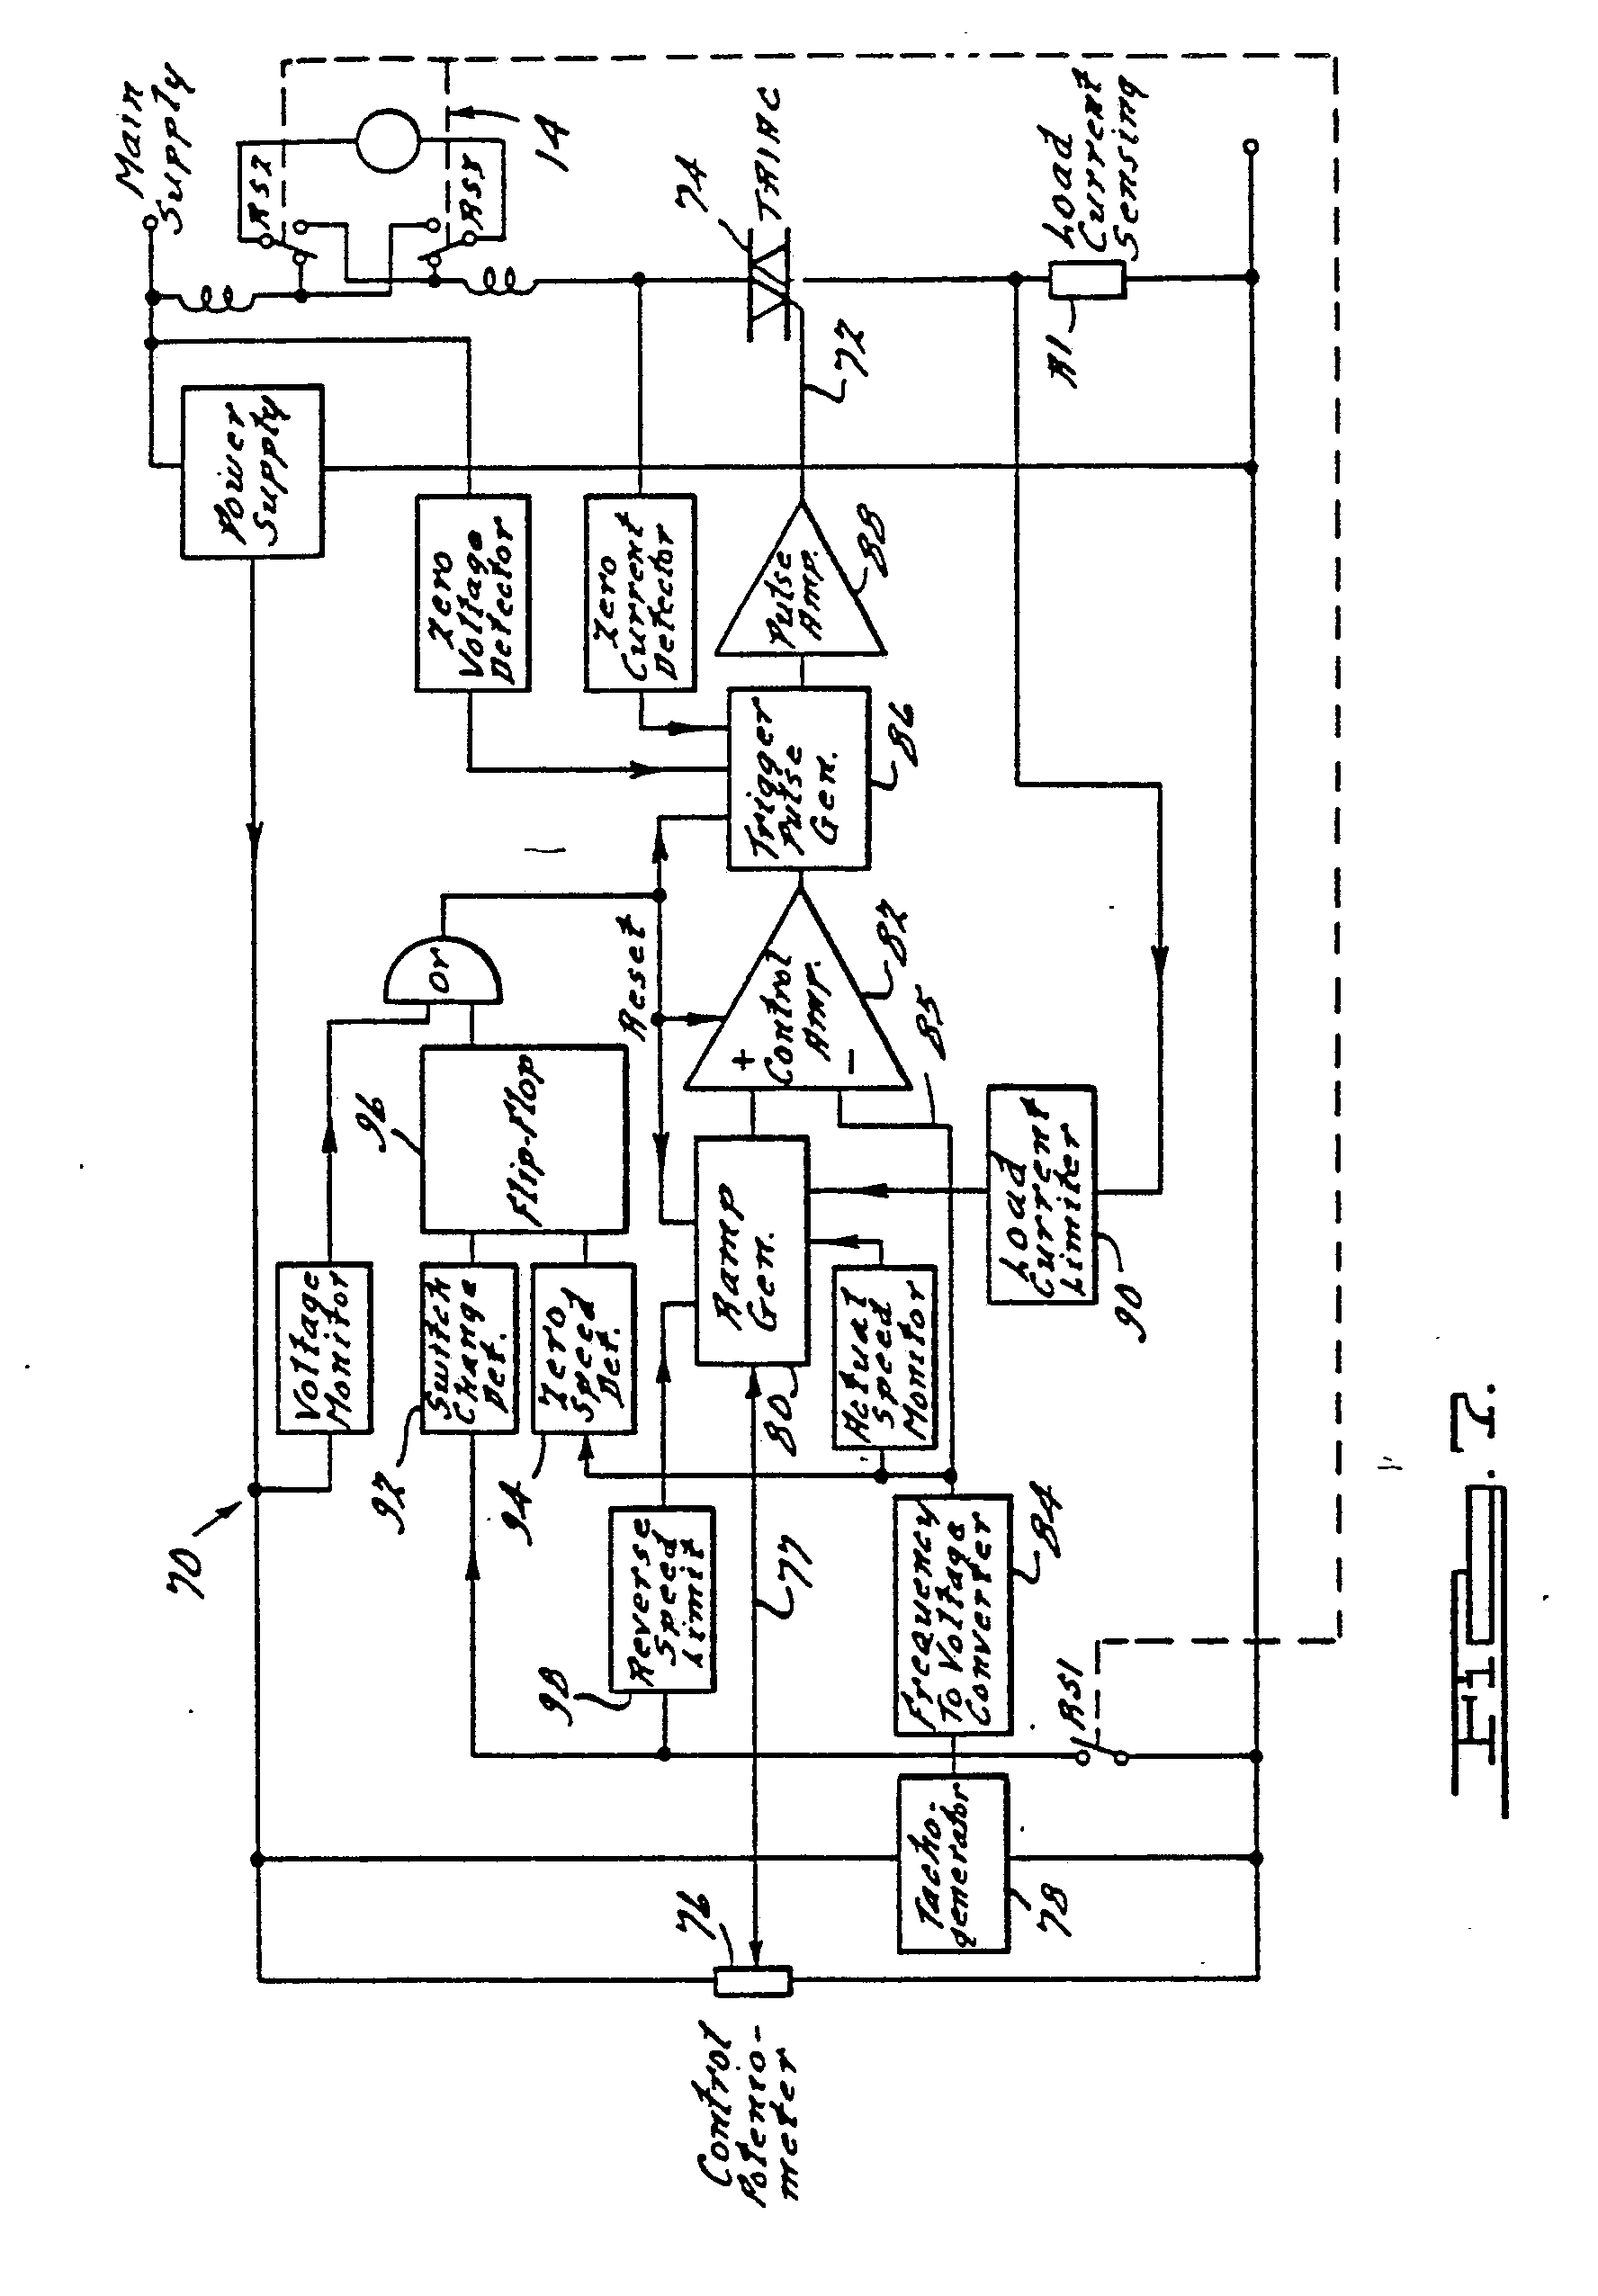 Power Tool Speed Controller Schematic Patent Ep0034822b1 Control Circuit For An Electric